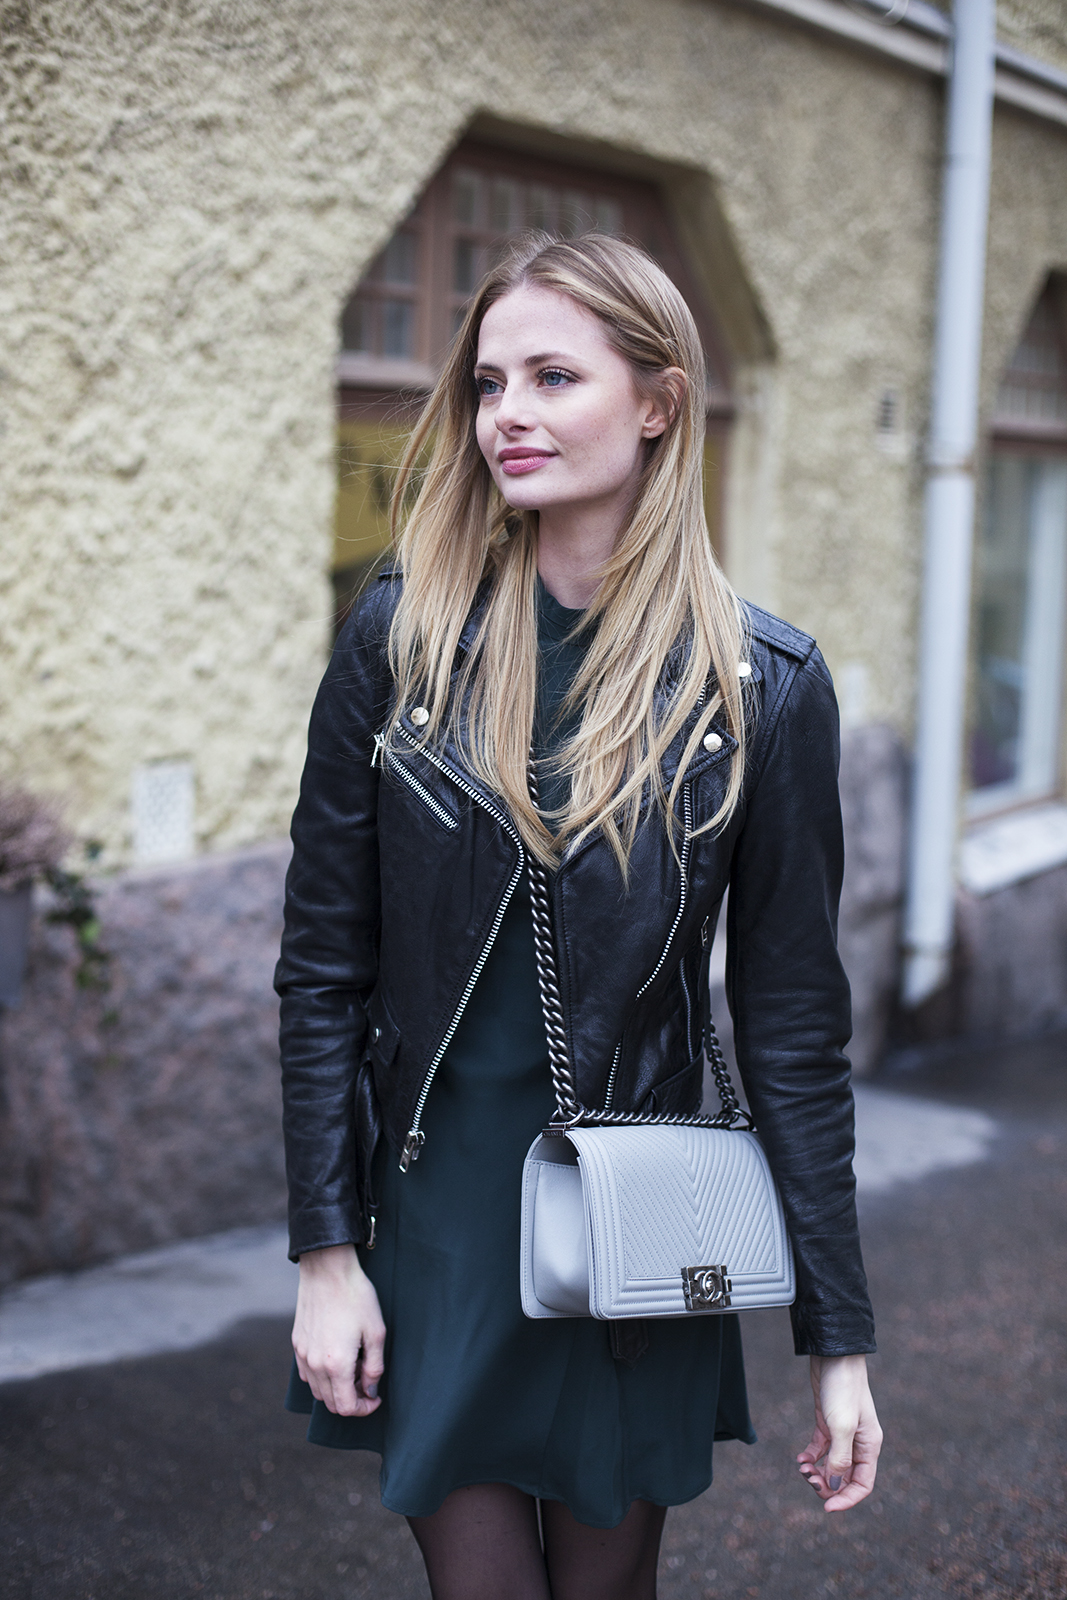 THE OOTD DIARY Sofia Ruutu